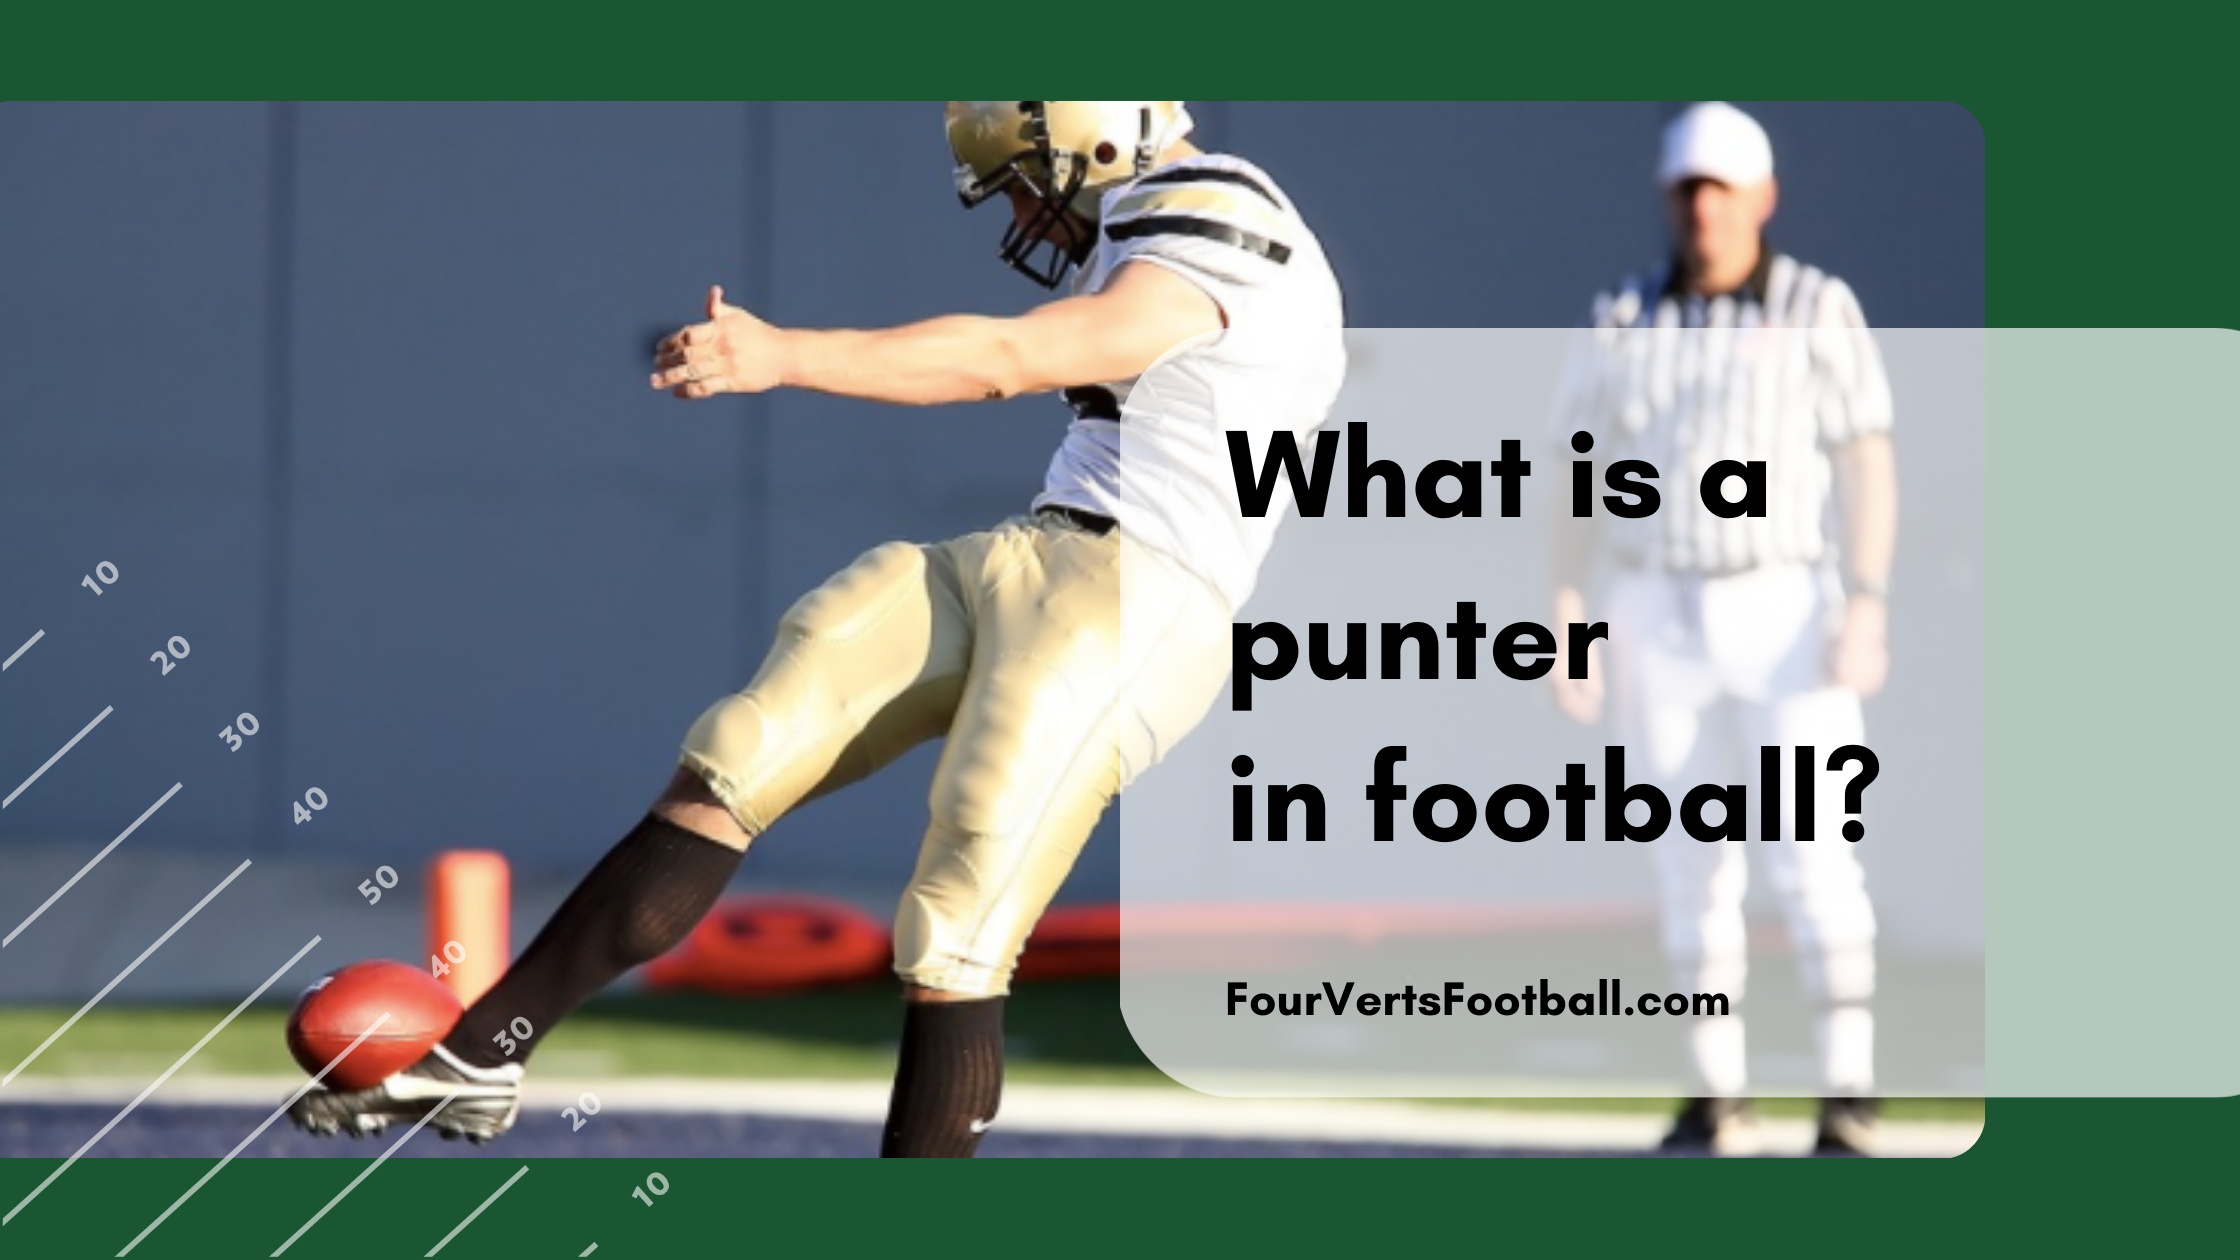 What is a punter